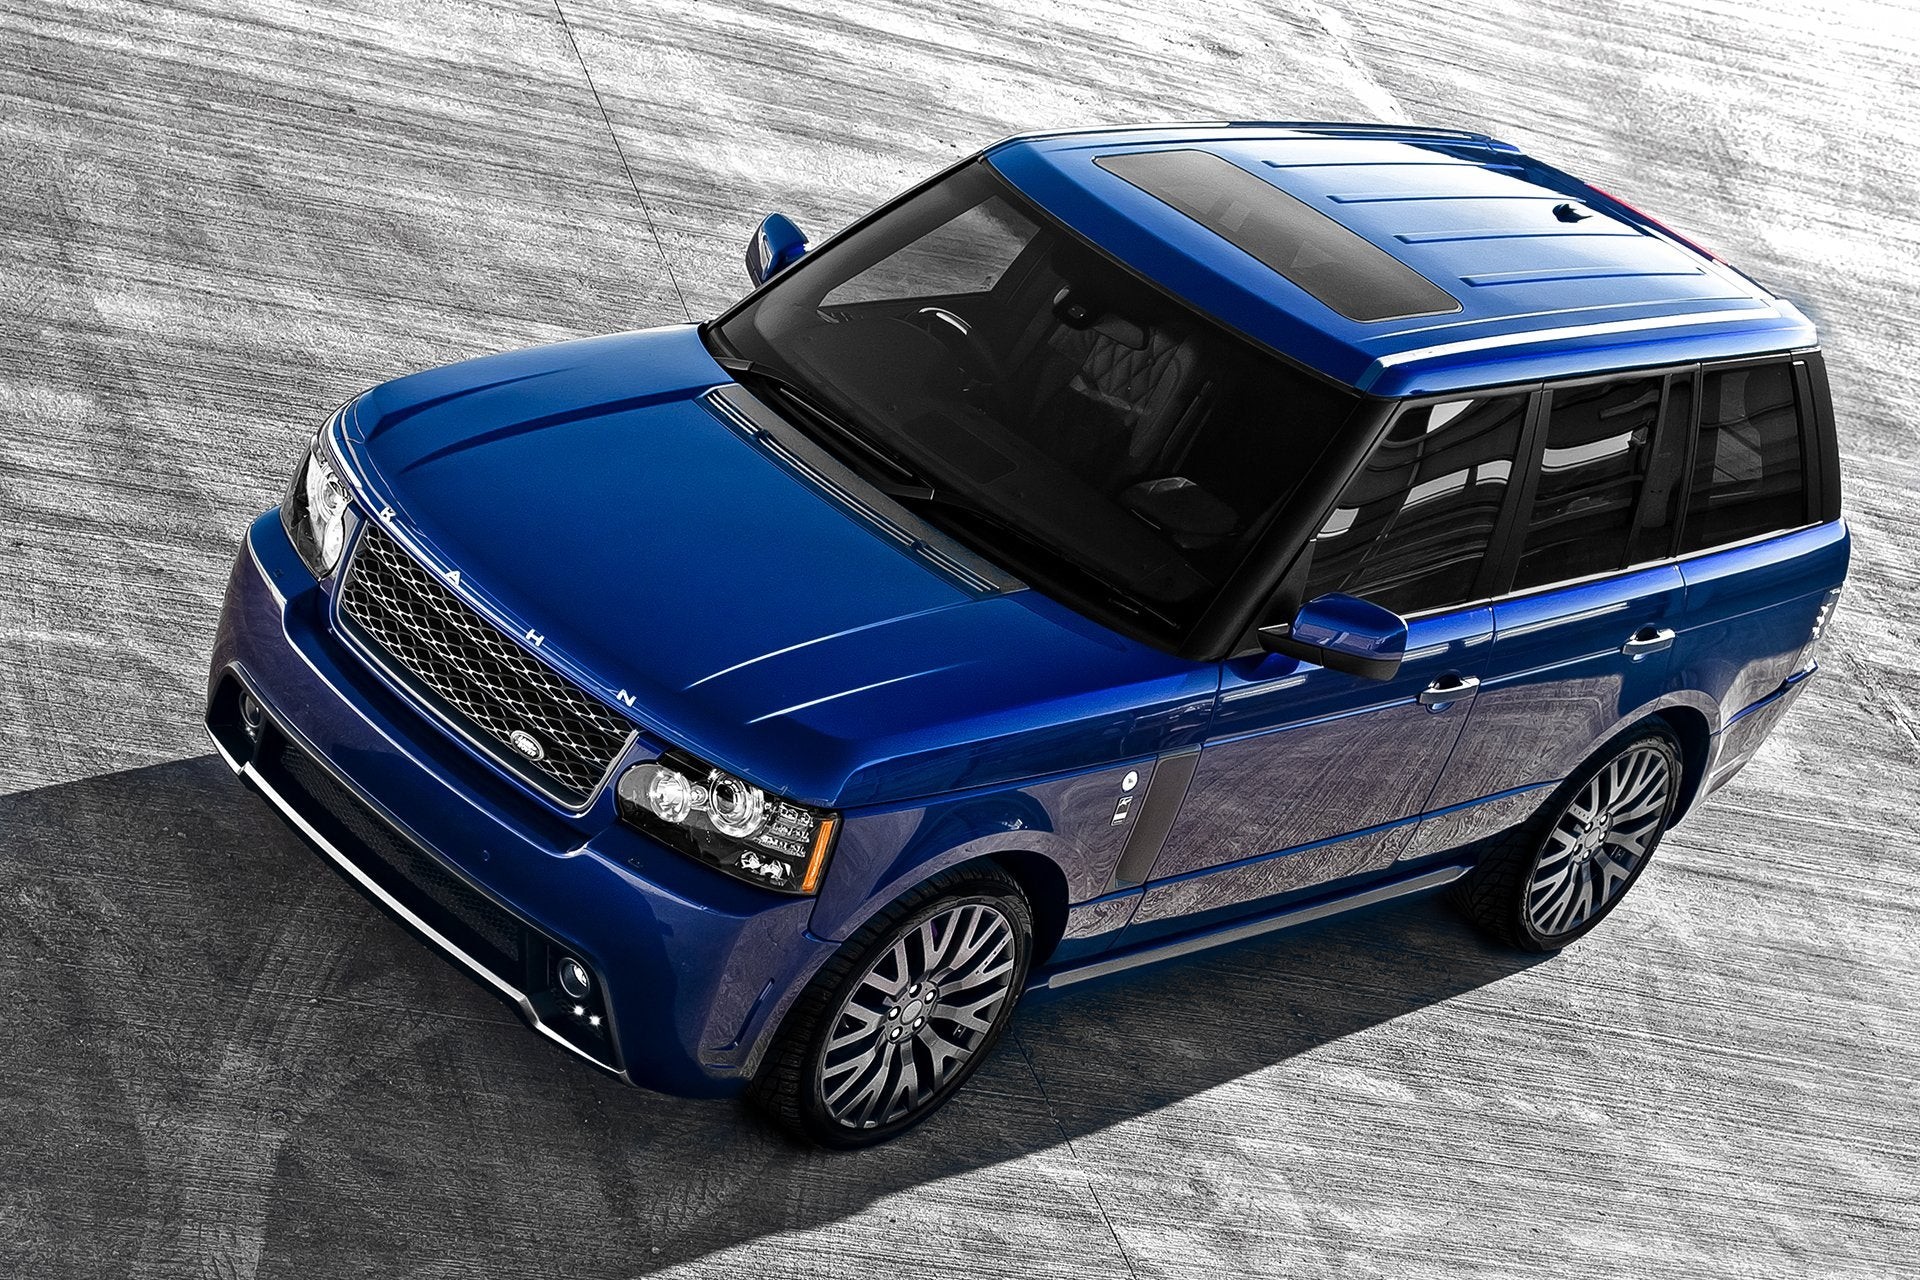 Range Rover (2009-2012) Rs Exterior Body Styling Pack by Kahn - Image 1995